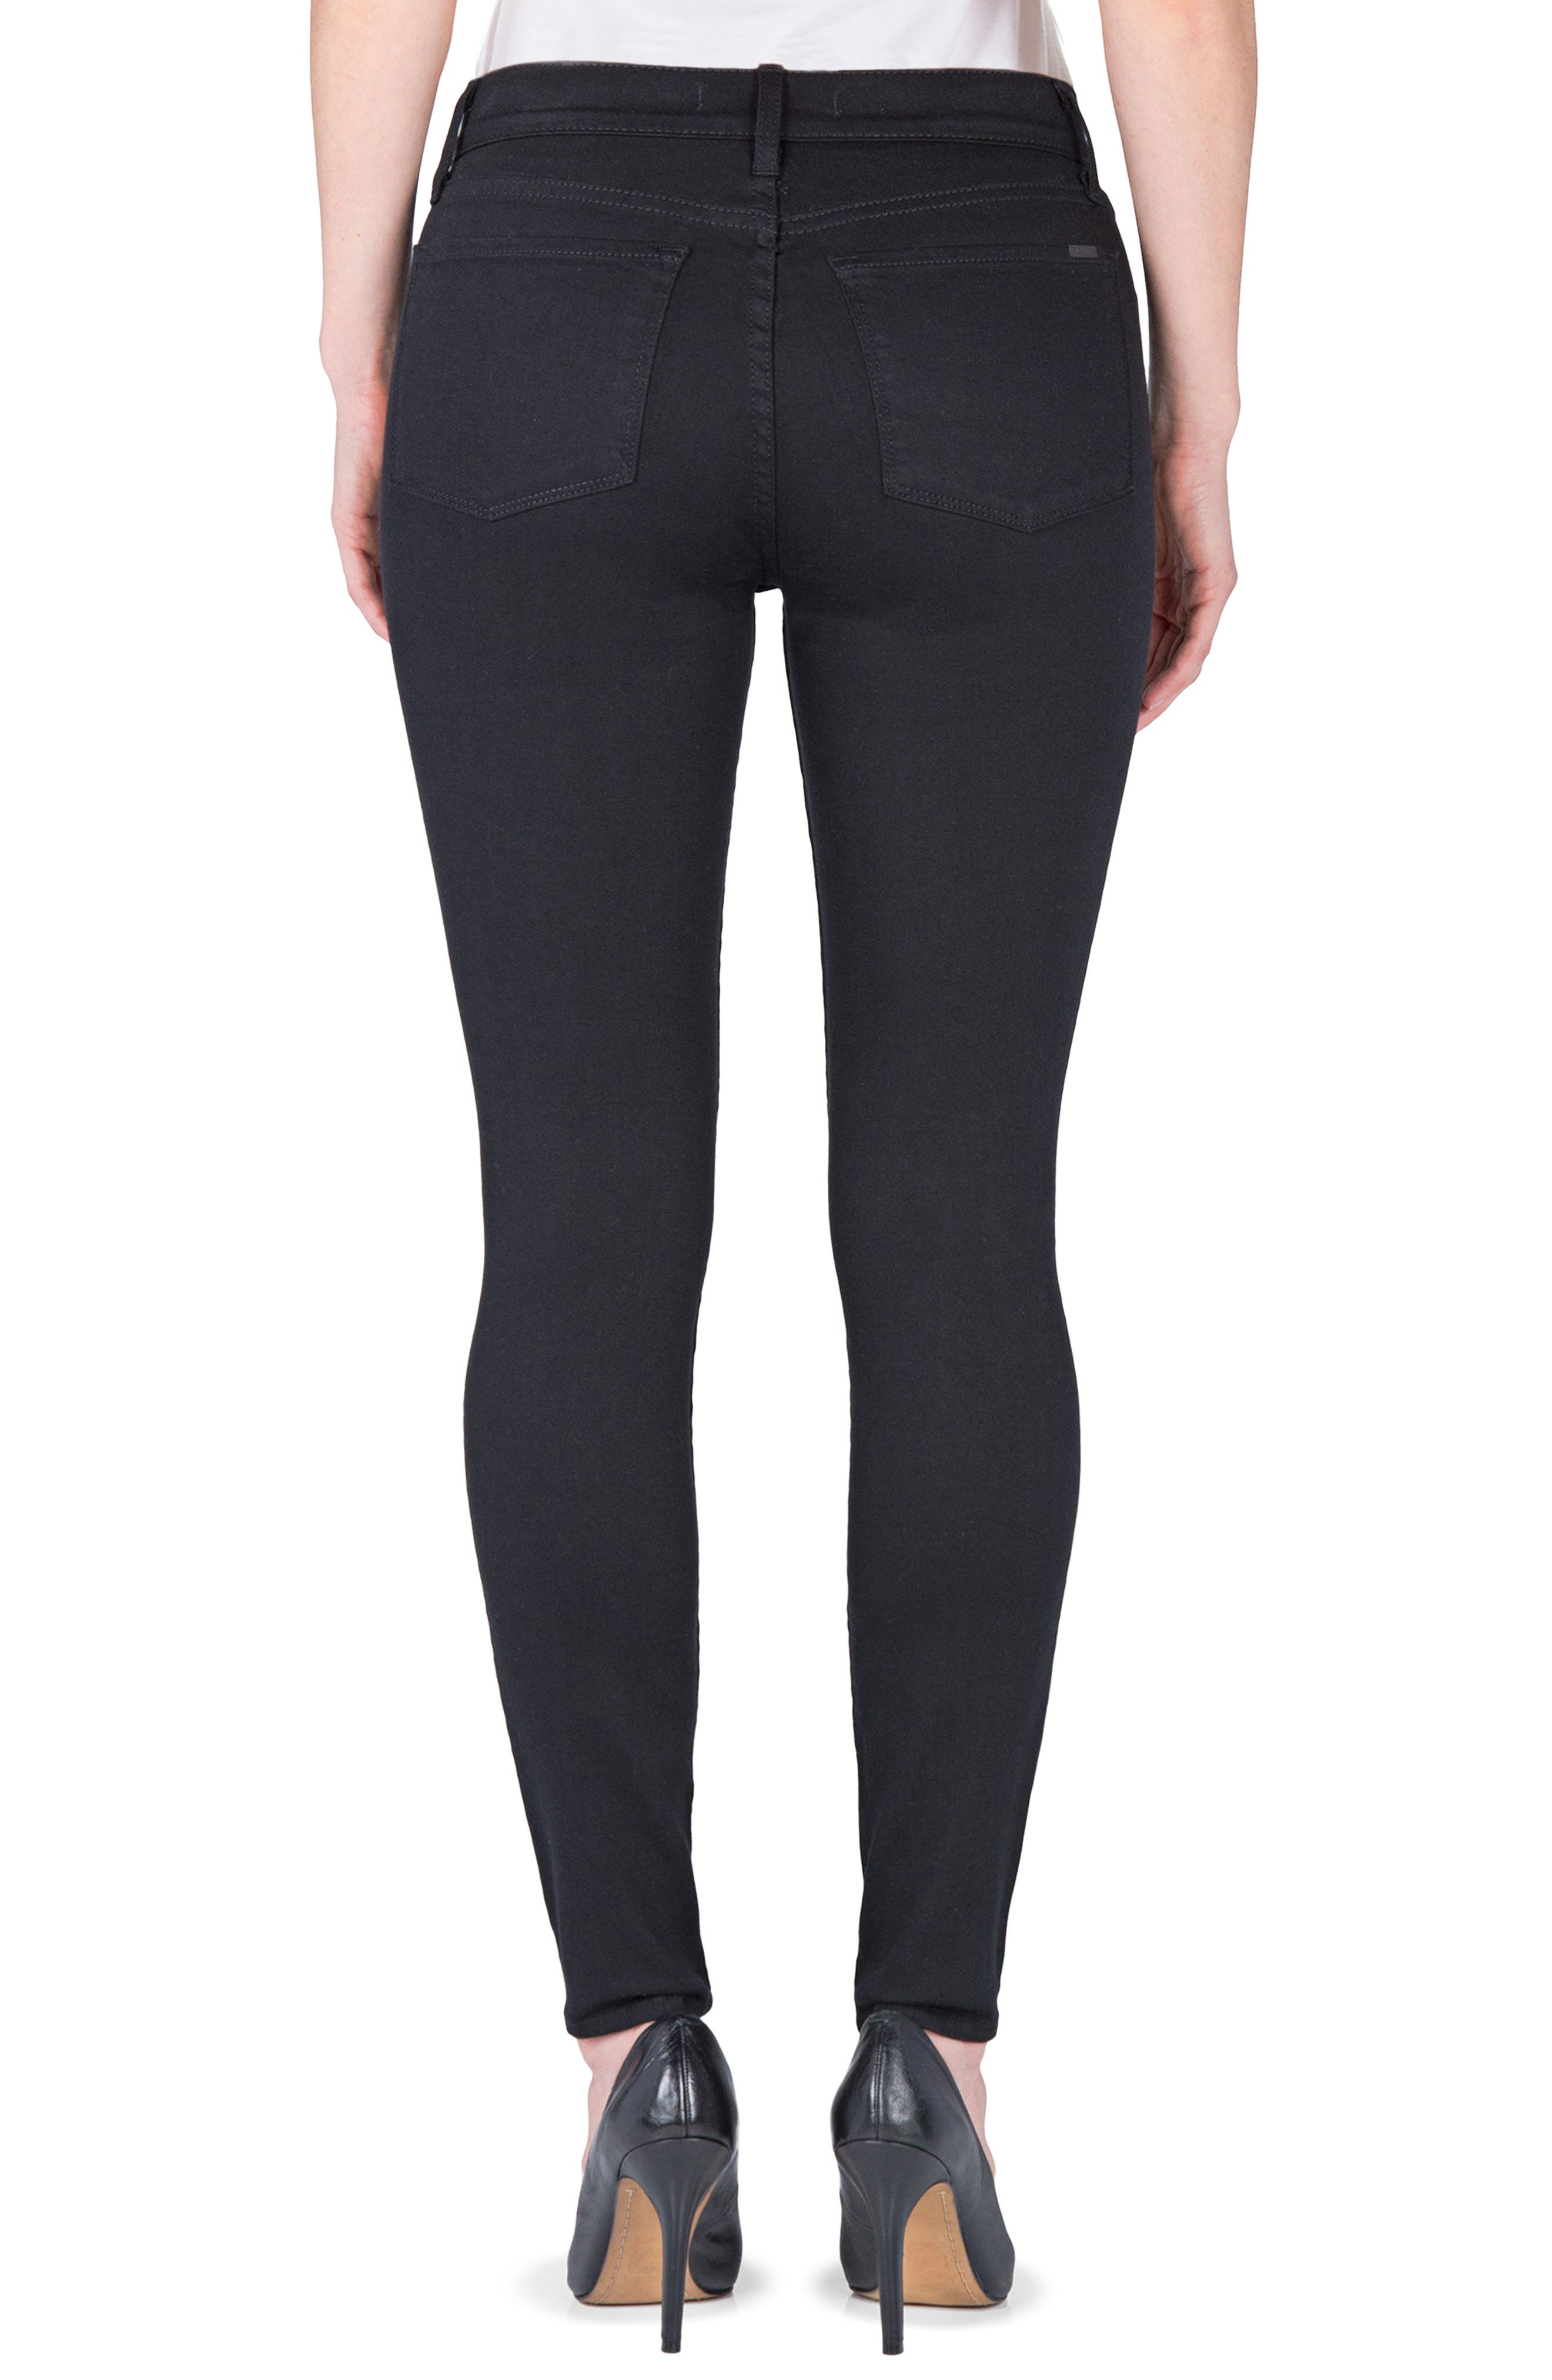 Gwen High Rise Skinny Jeans,                             Alternate thumbnail 2, color,                             001